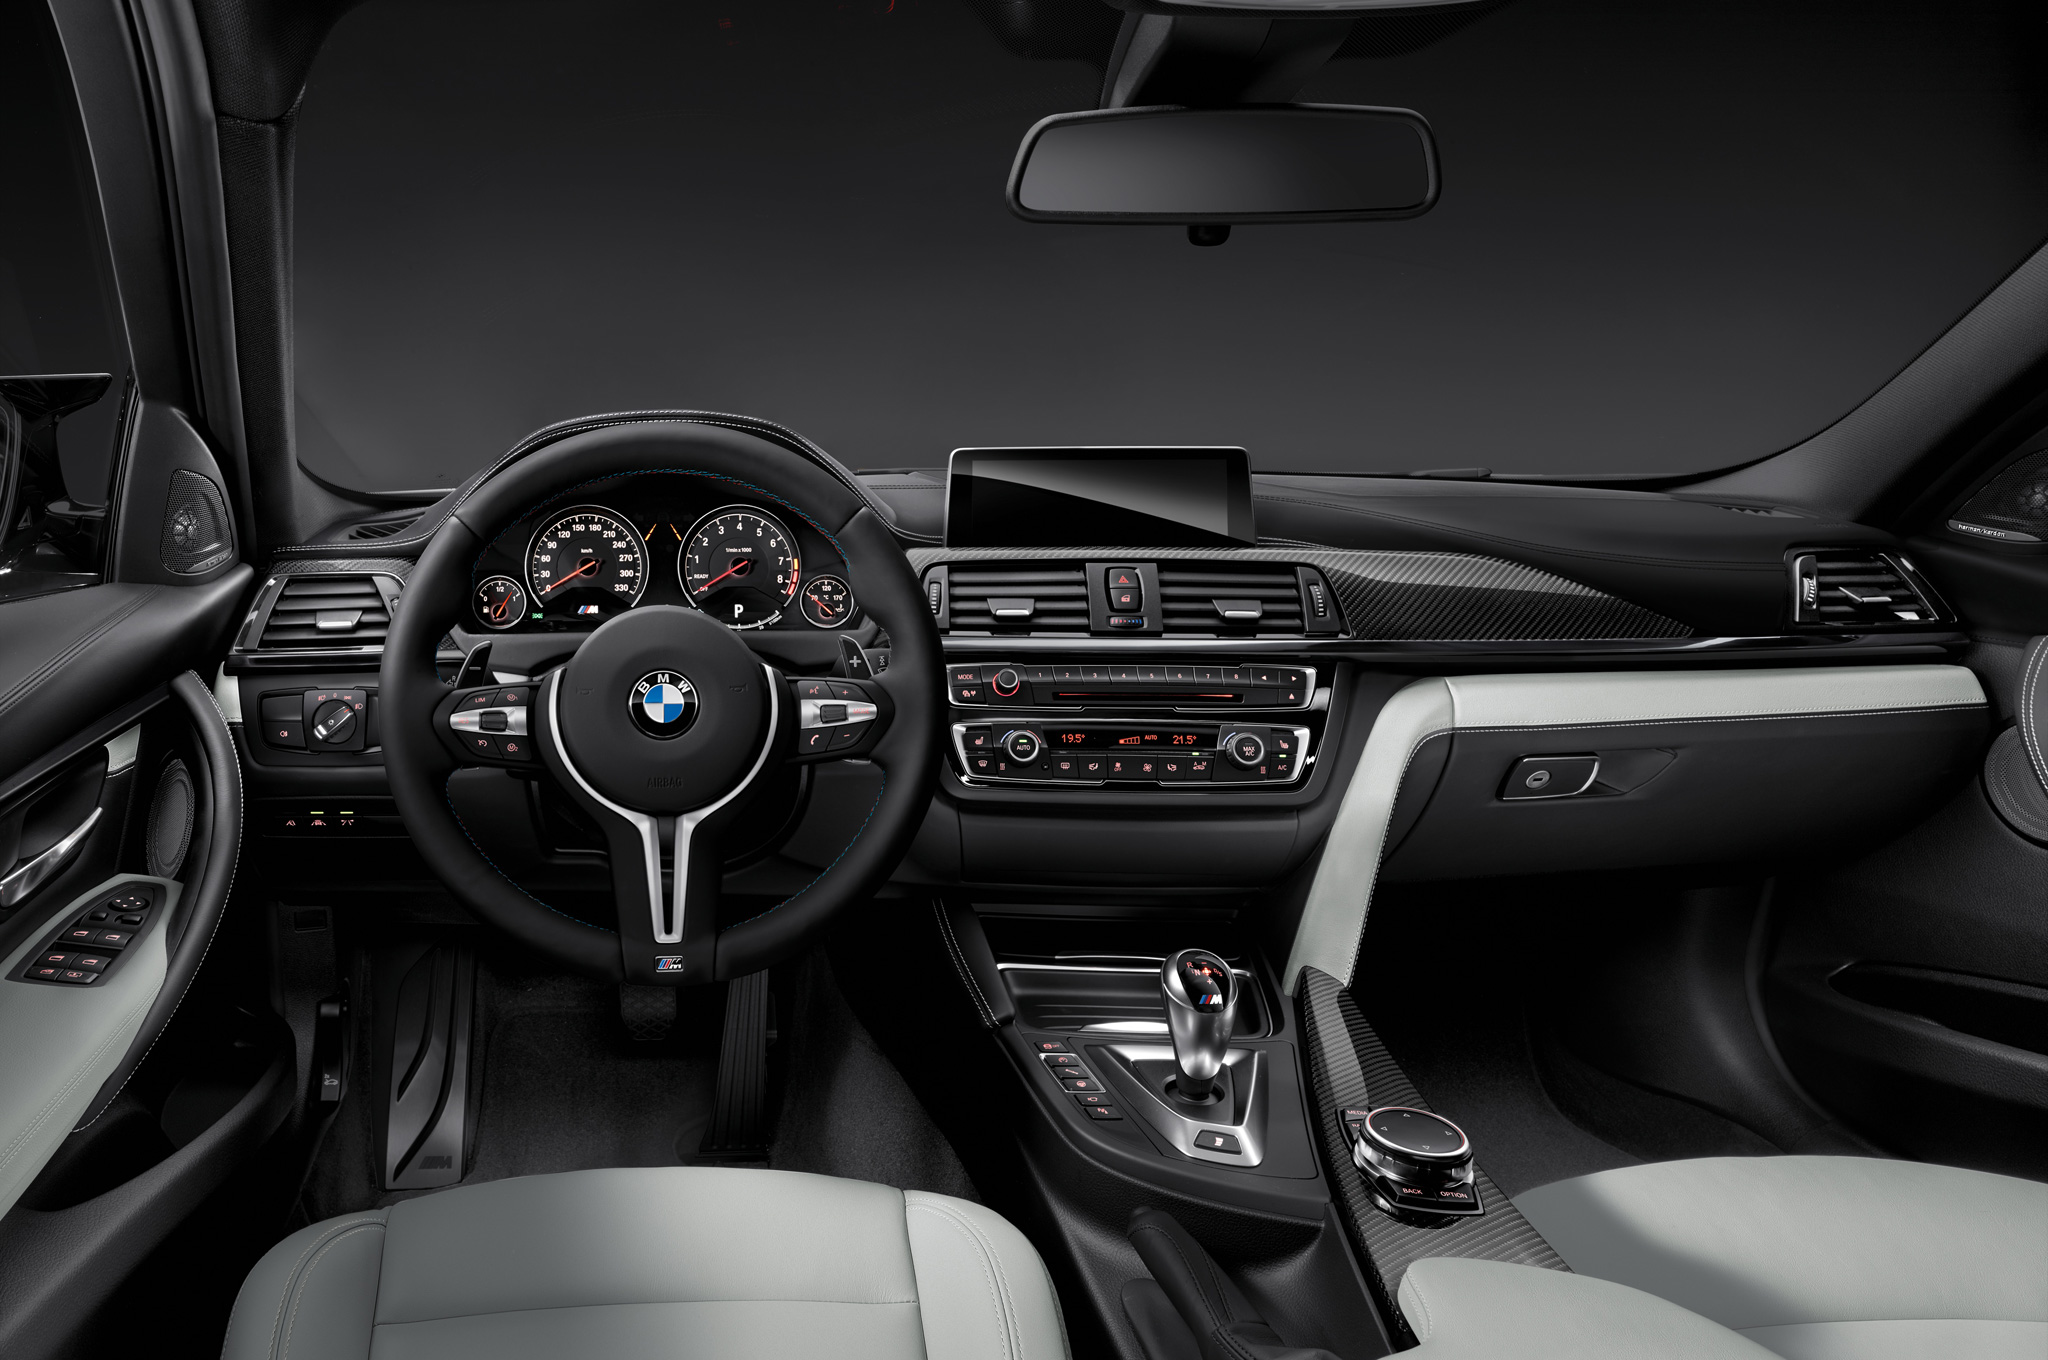 2015 Bmw M3 Dashboard And Cockpit (Photo 44 of 55)